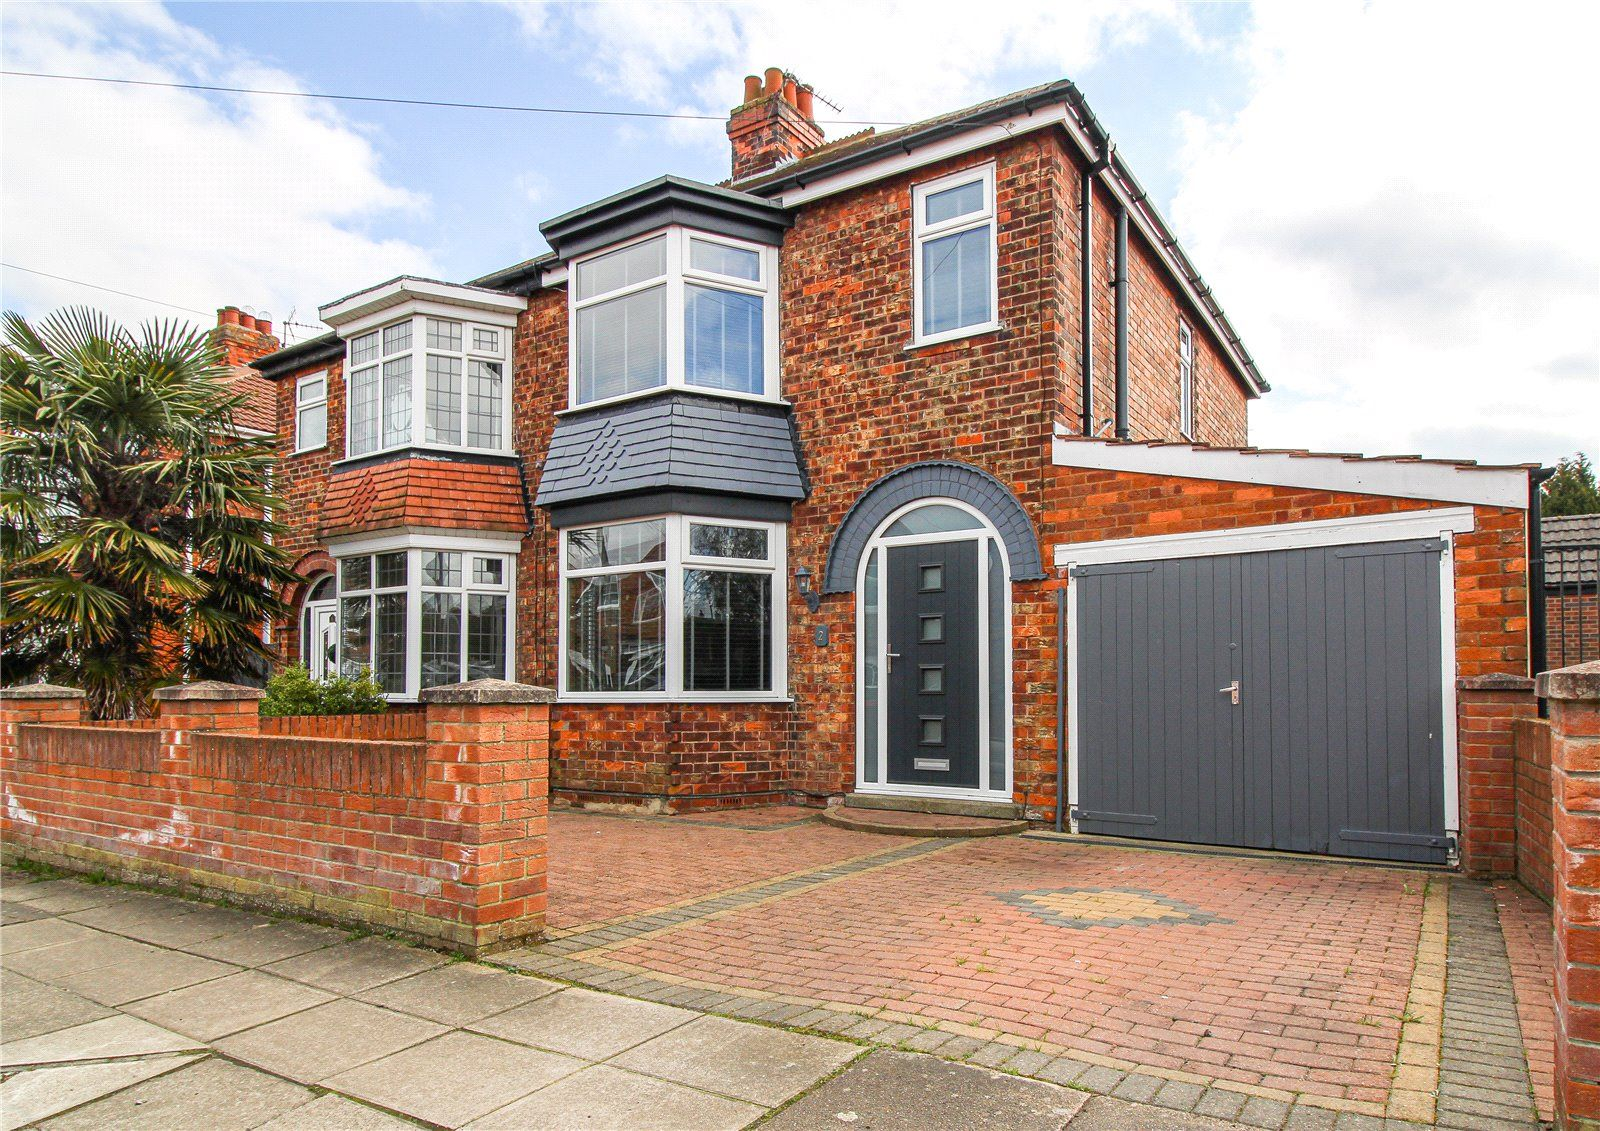 Property photo 1 of 14. Picture No. 14